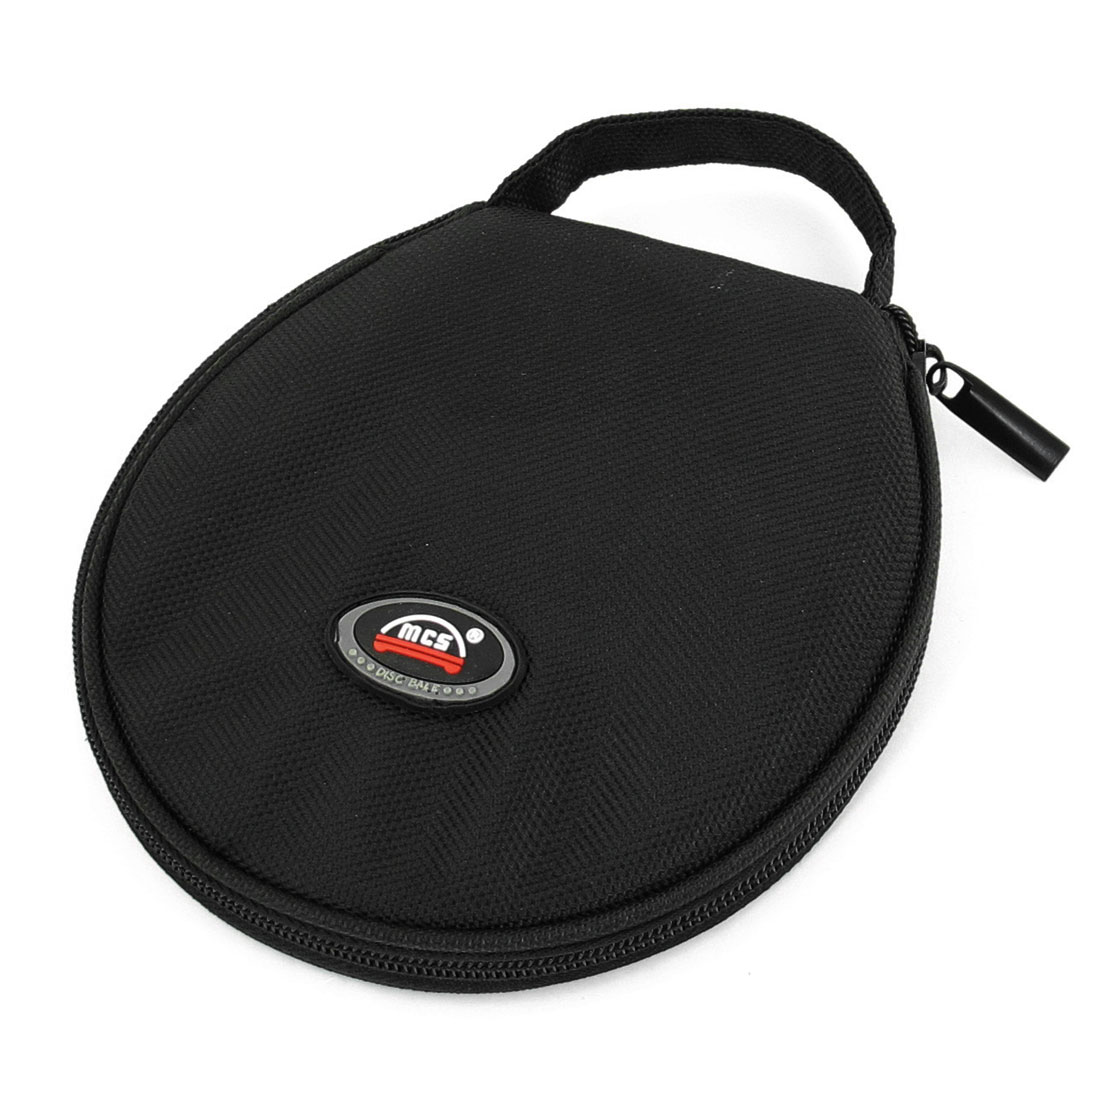 Family Car Zip up Closure Round Shaped 20 Pieces CD VCD Disc Holder Bag Black